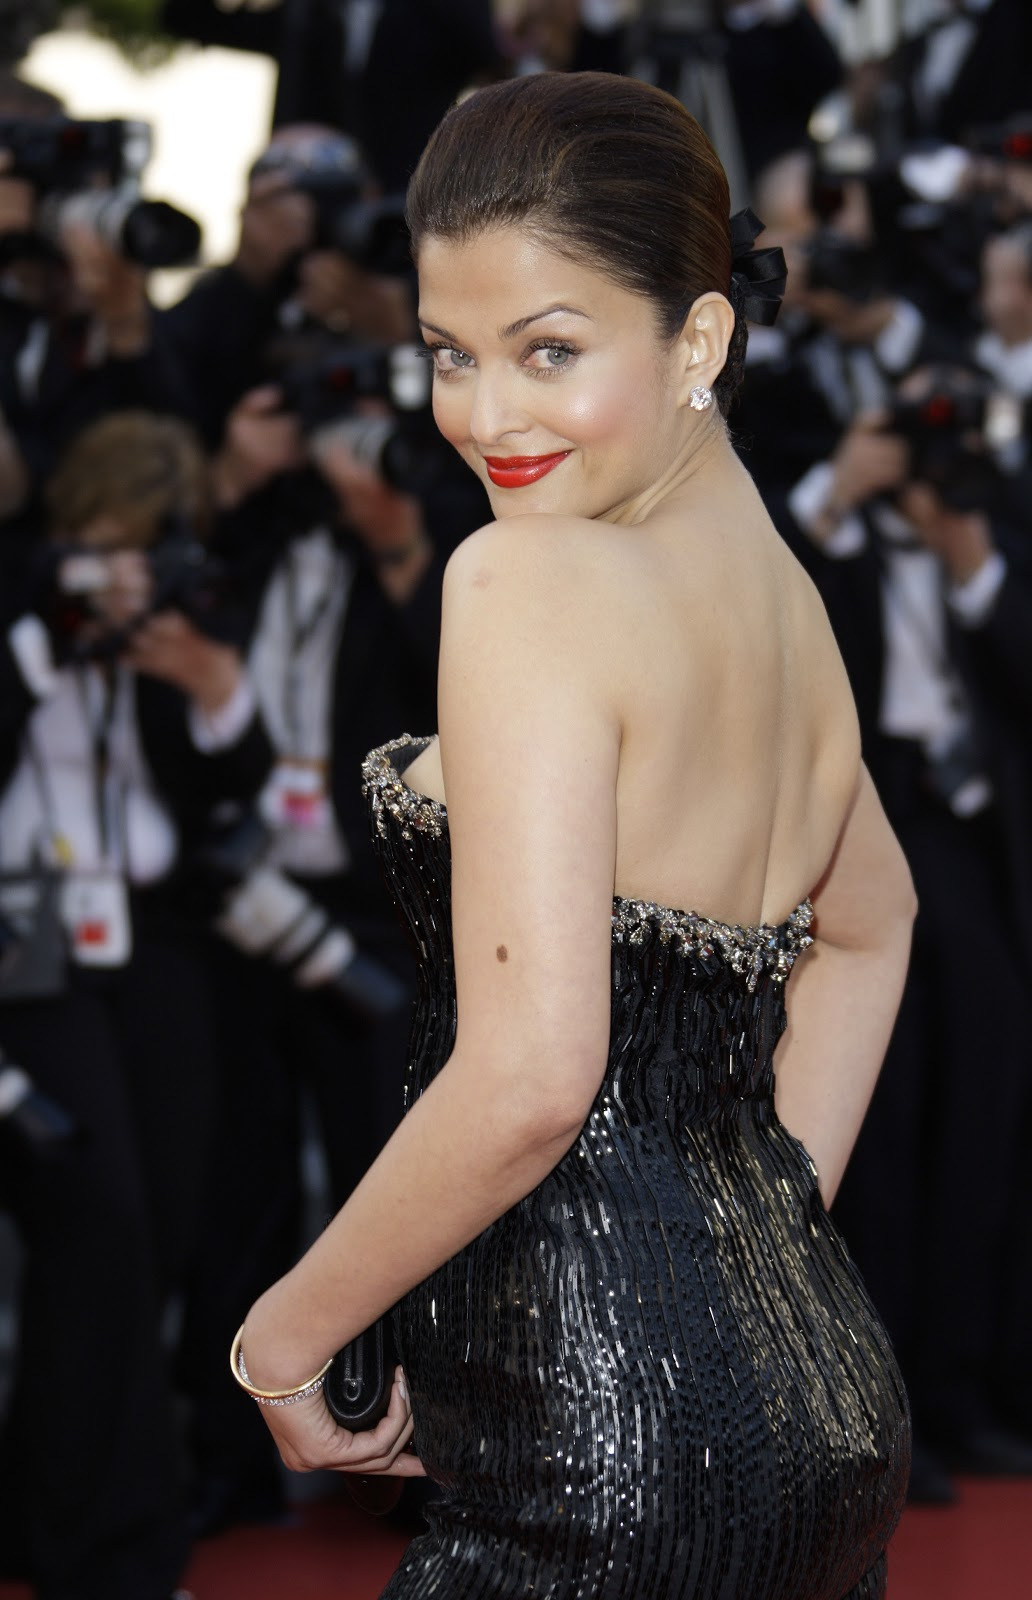 Aishwarya Rai Hottest Hd Photos Ever In Black Dress At The